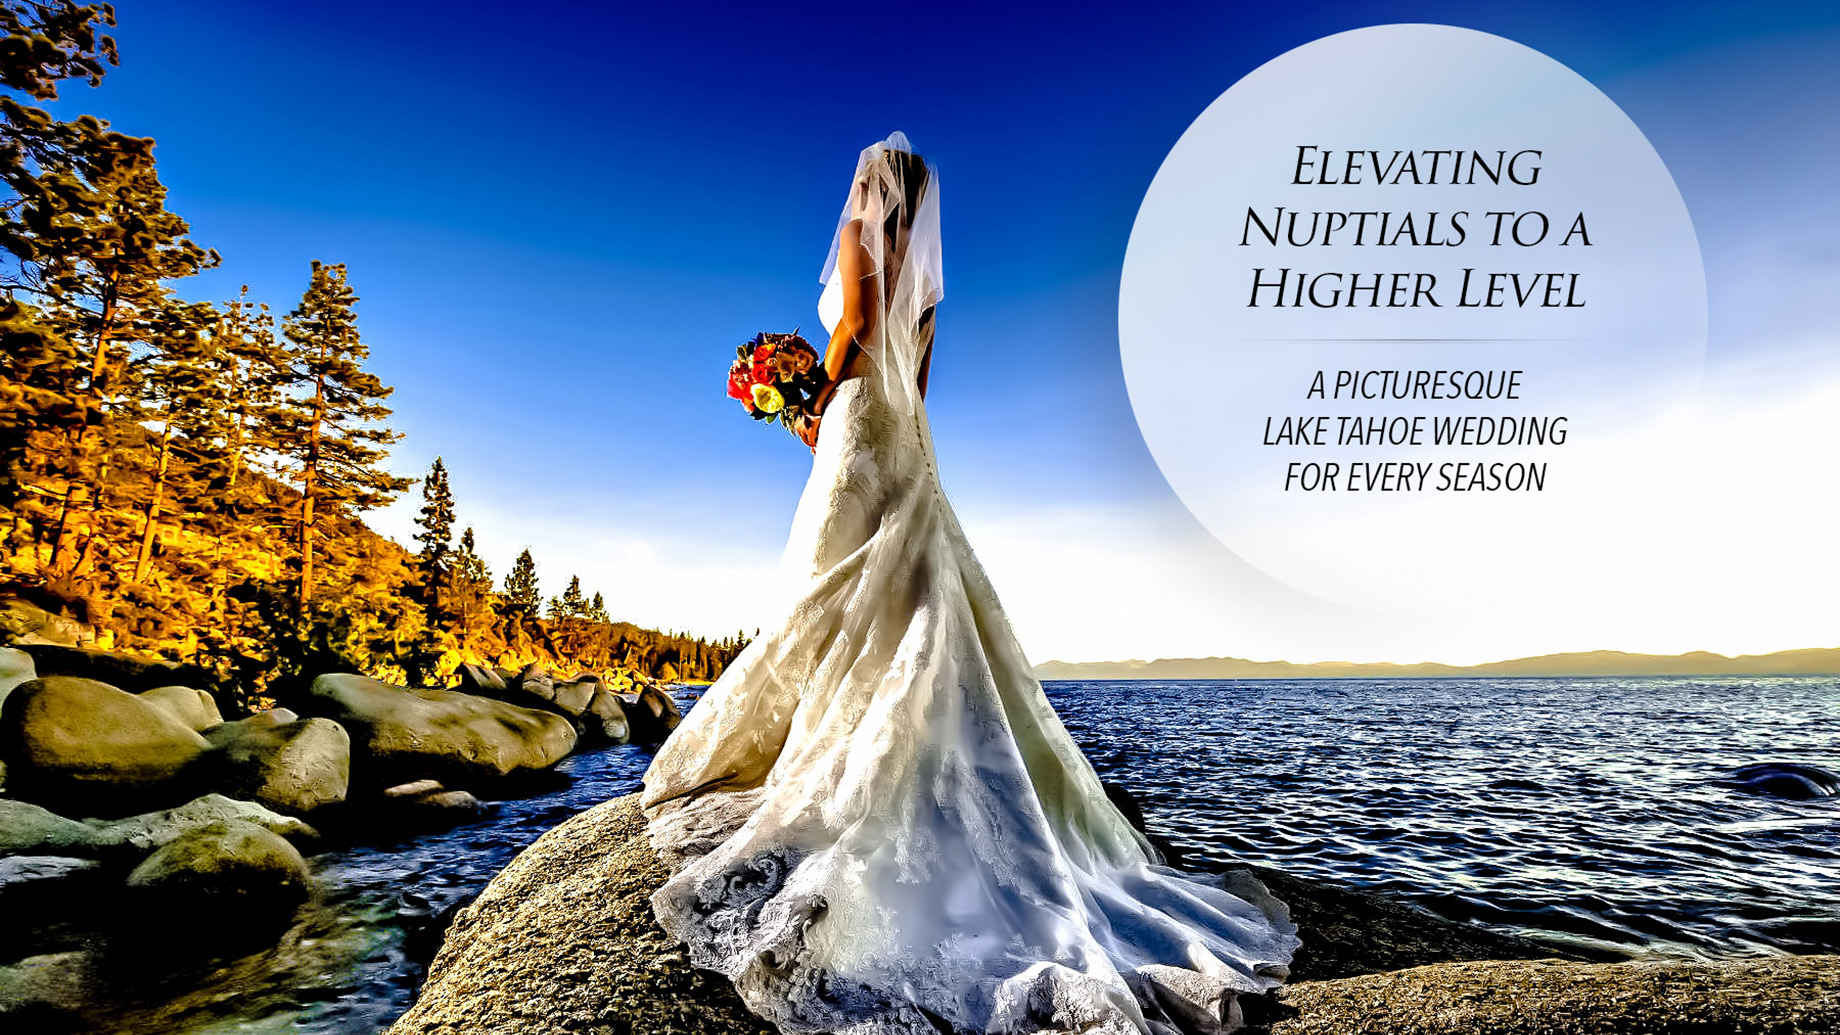 Elevating Nuptials to a Higher Level - A Picturesque Lake Tahoe Wedding for Every Season